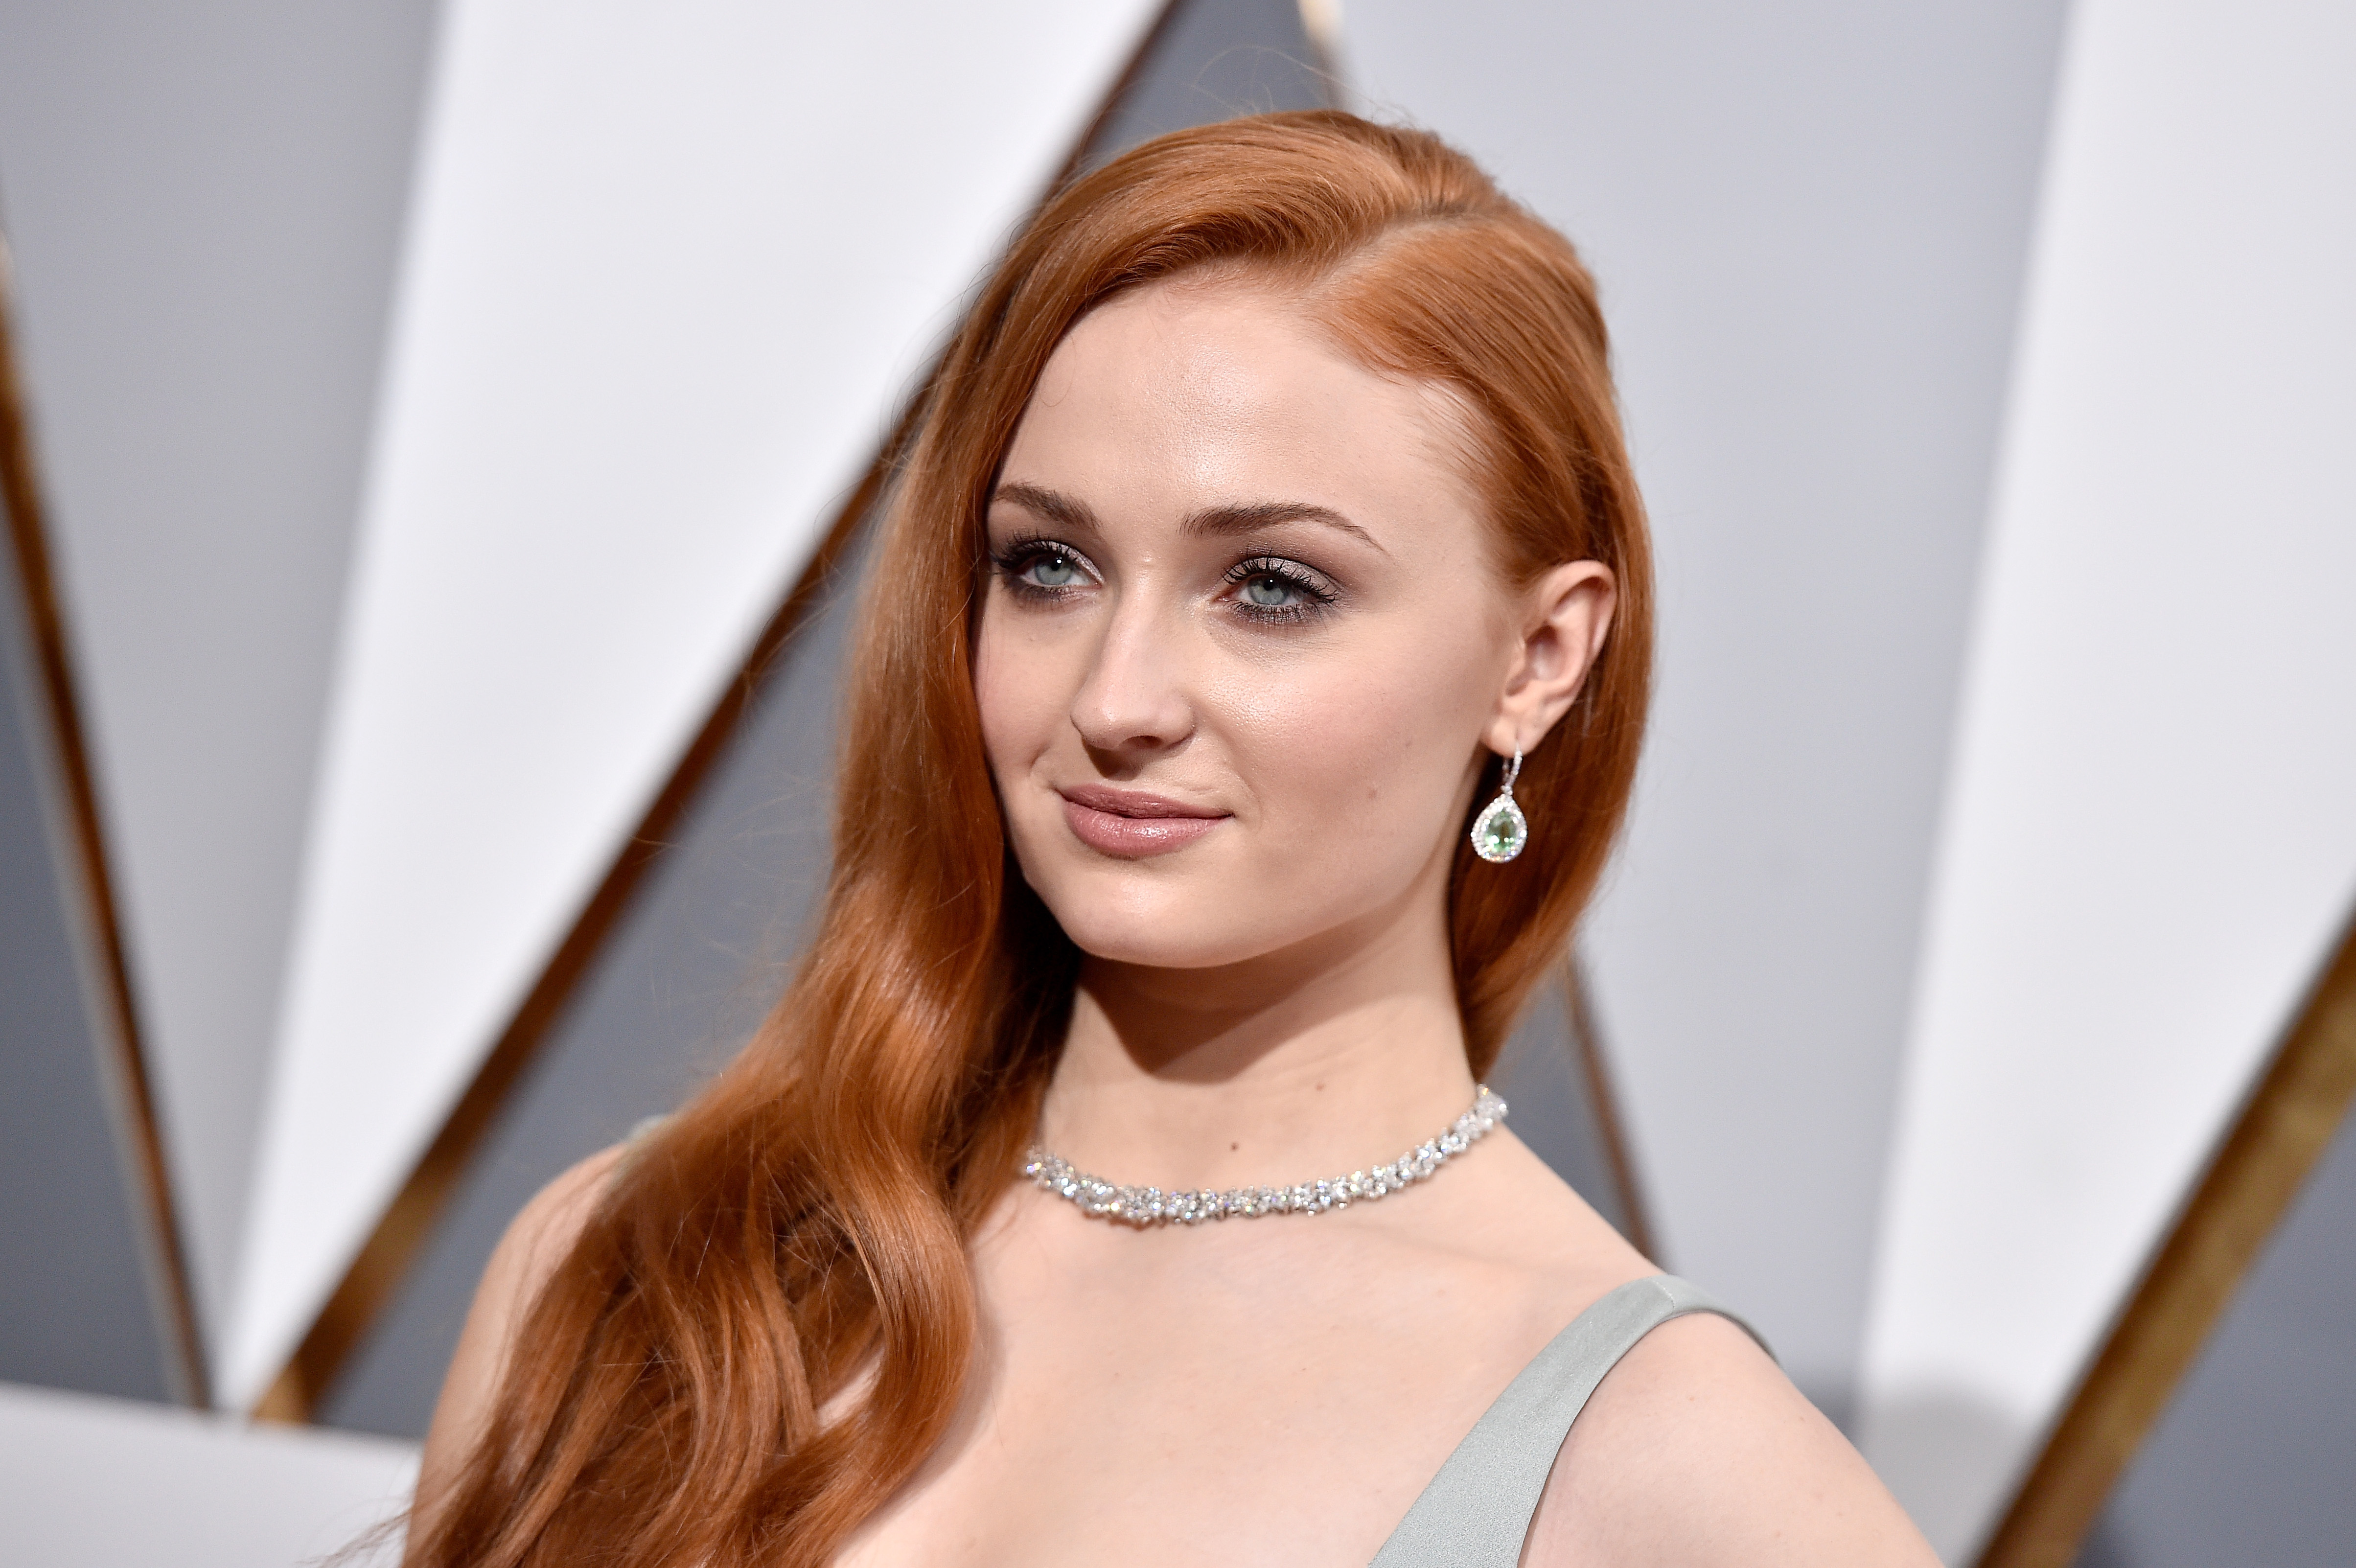 Sophie Turner Has Already Revealed The Game Of Thrones Ending To Some Of Her Friends Her Ie